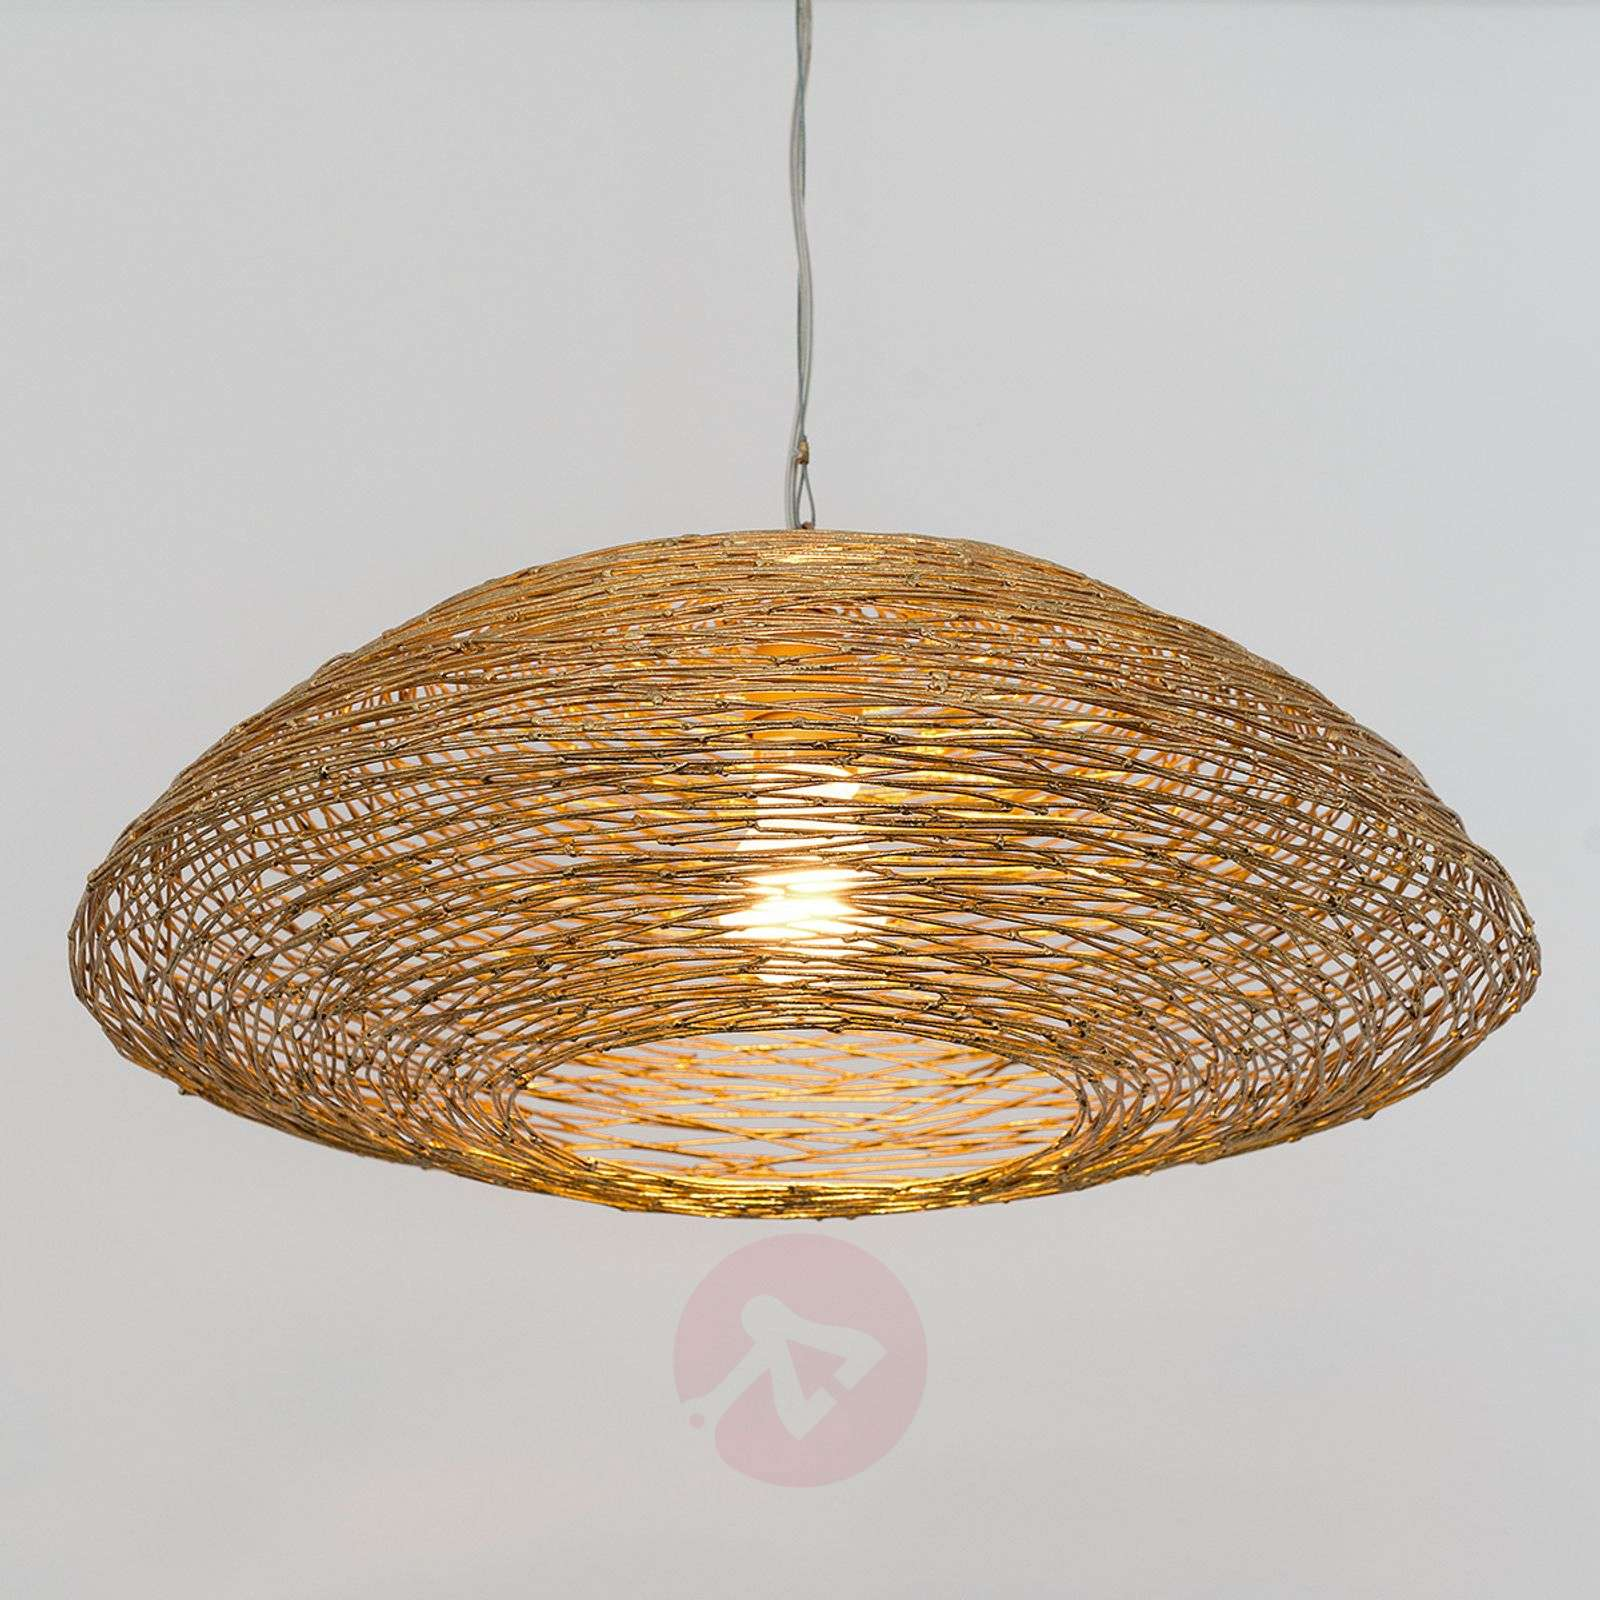 Pendant light piseo with a woven metal lampshade lights pendant light piseo with a woven metal lampshade 4512521 01 aloadofball Images